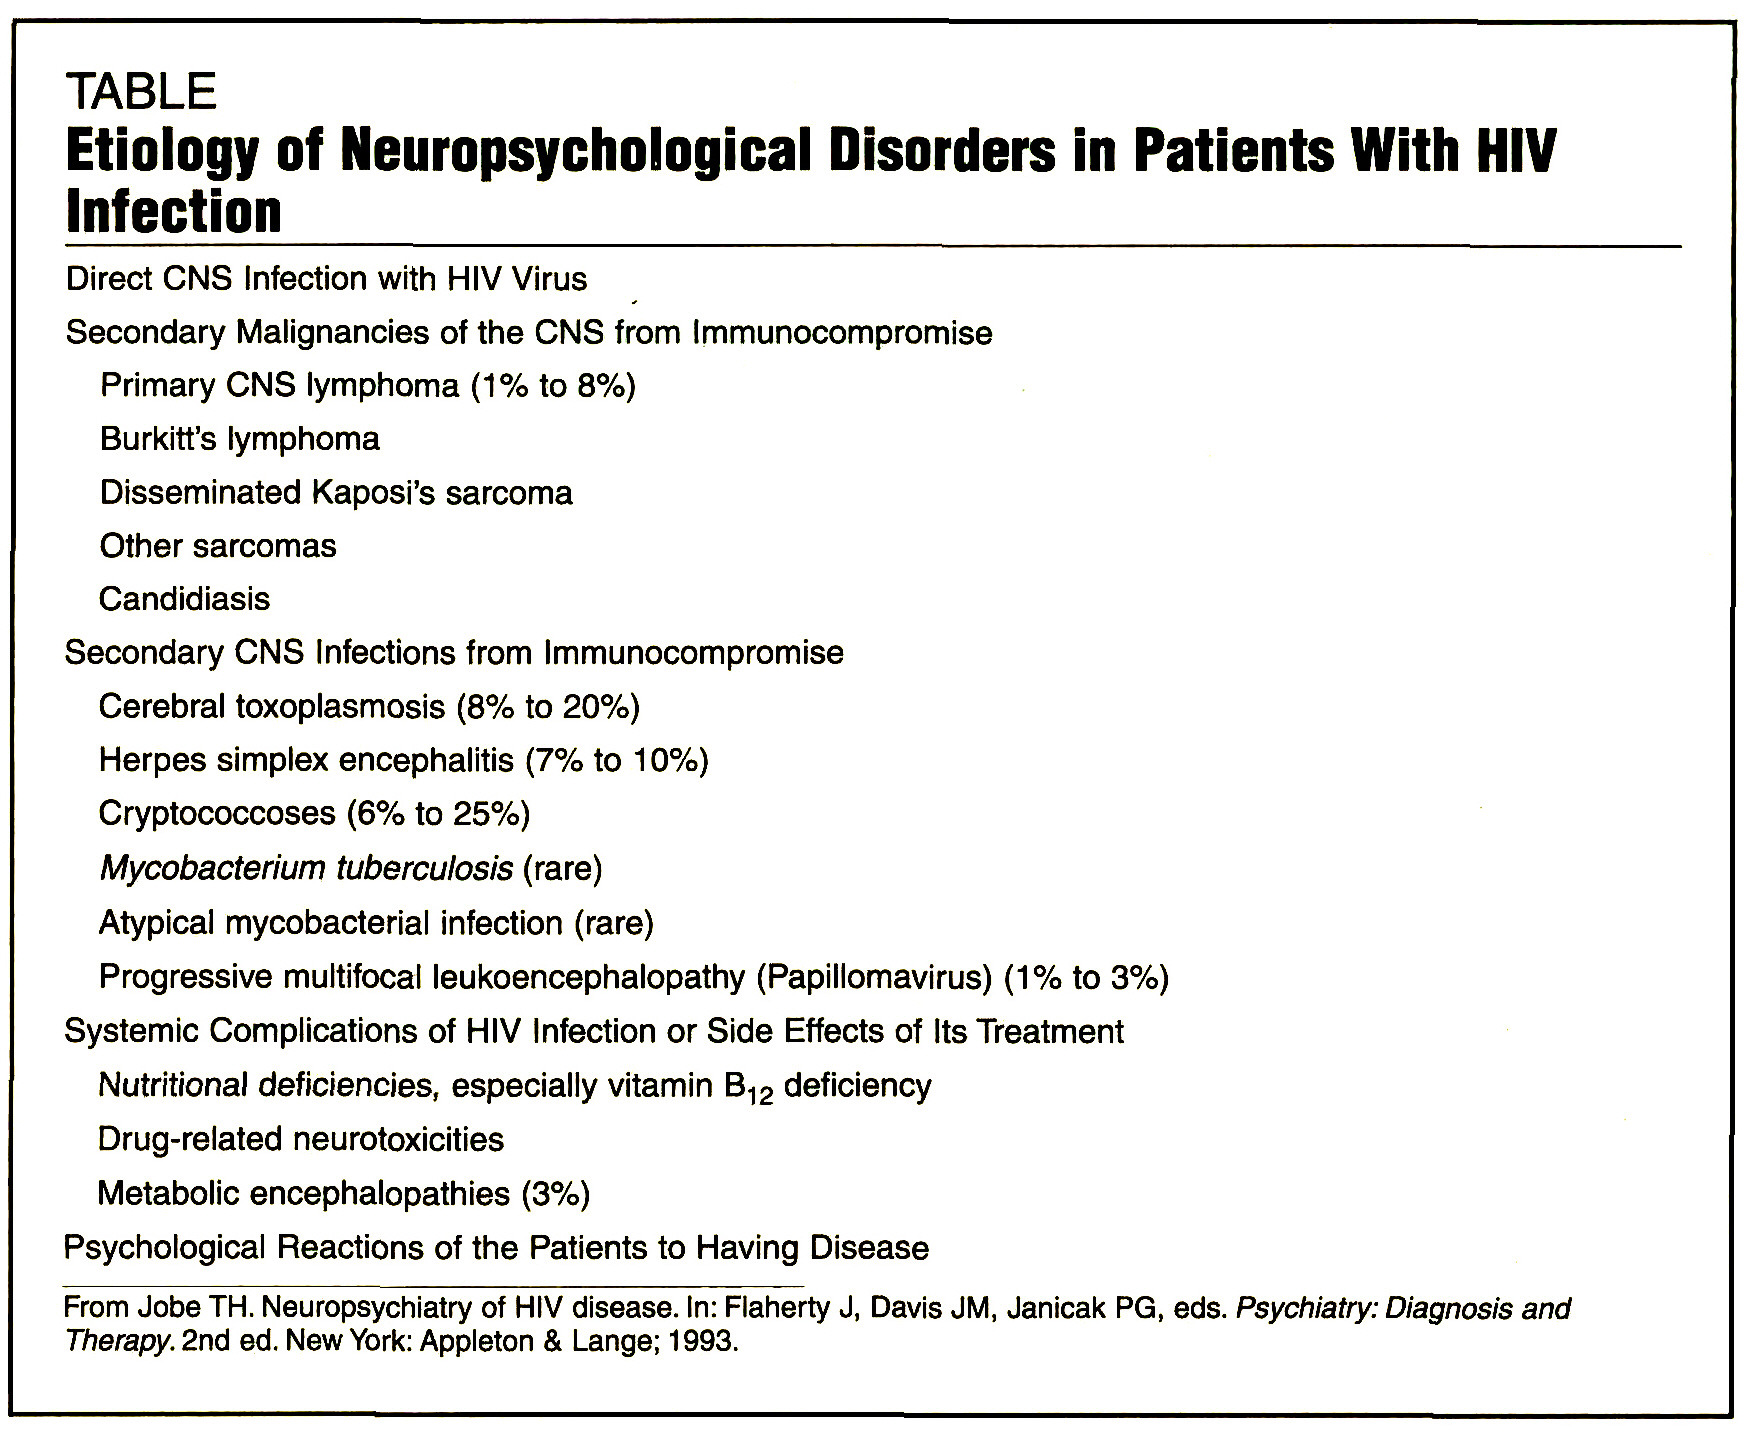 TABLEEtiology of Neuropsychological Disorders in Patients With HIV Infection